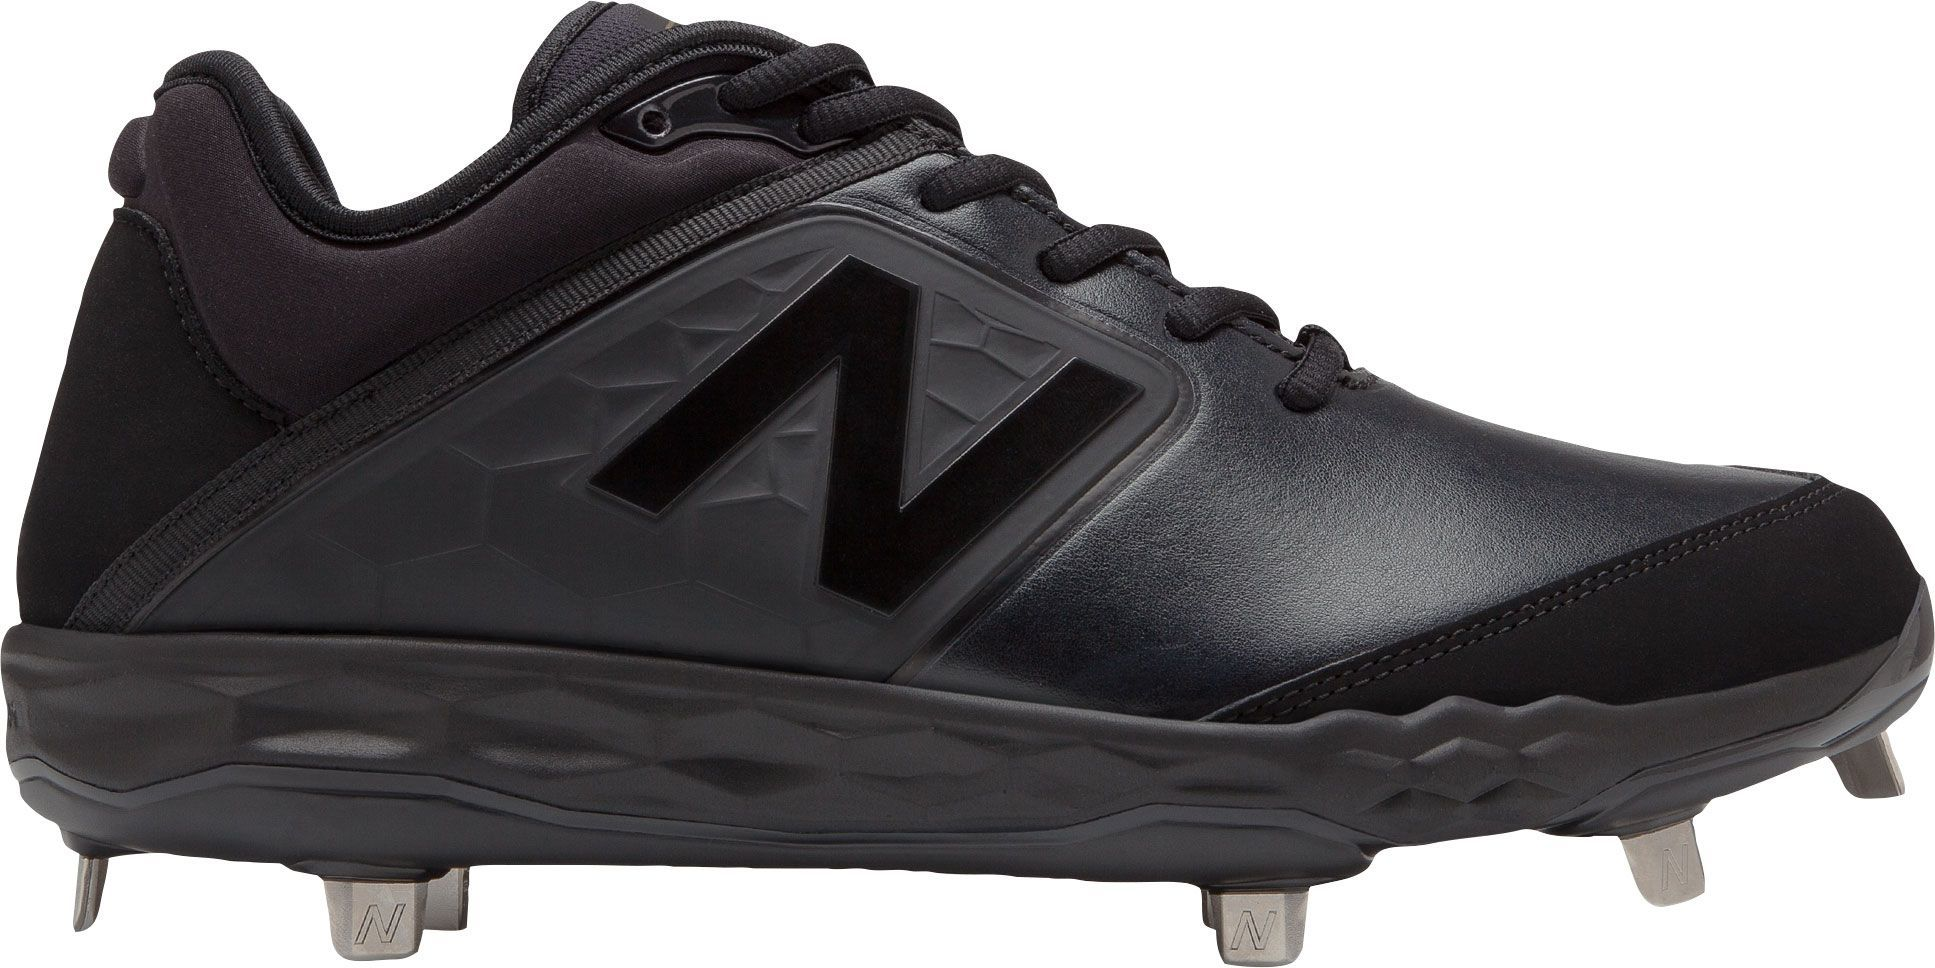 8dd1781bf1c35 New Balance Men's 3000 V4 Metal Baseball Cleats, Size: 7.0, Red in ...